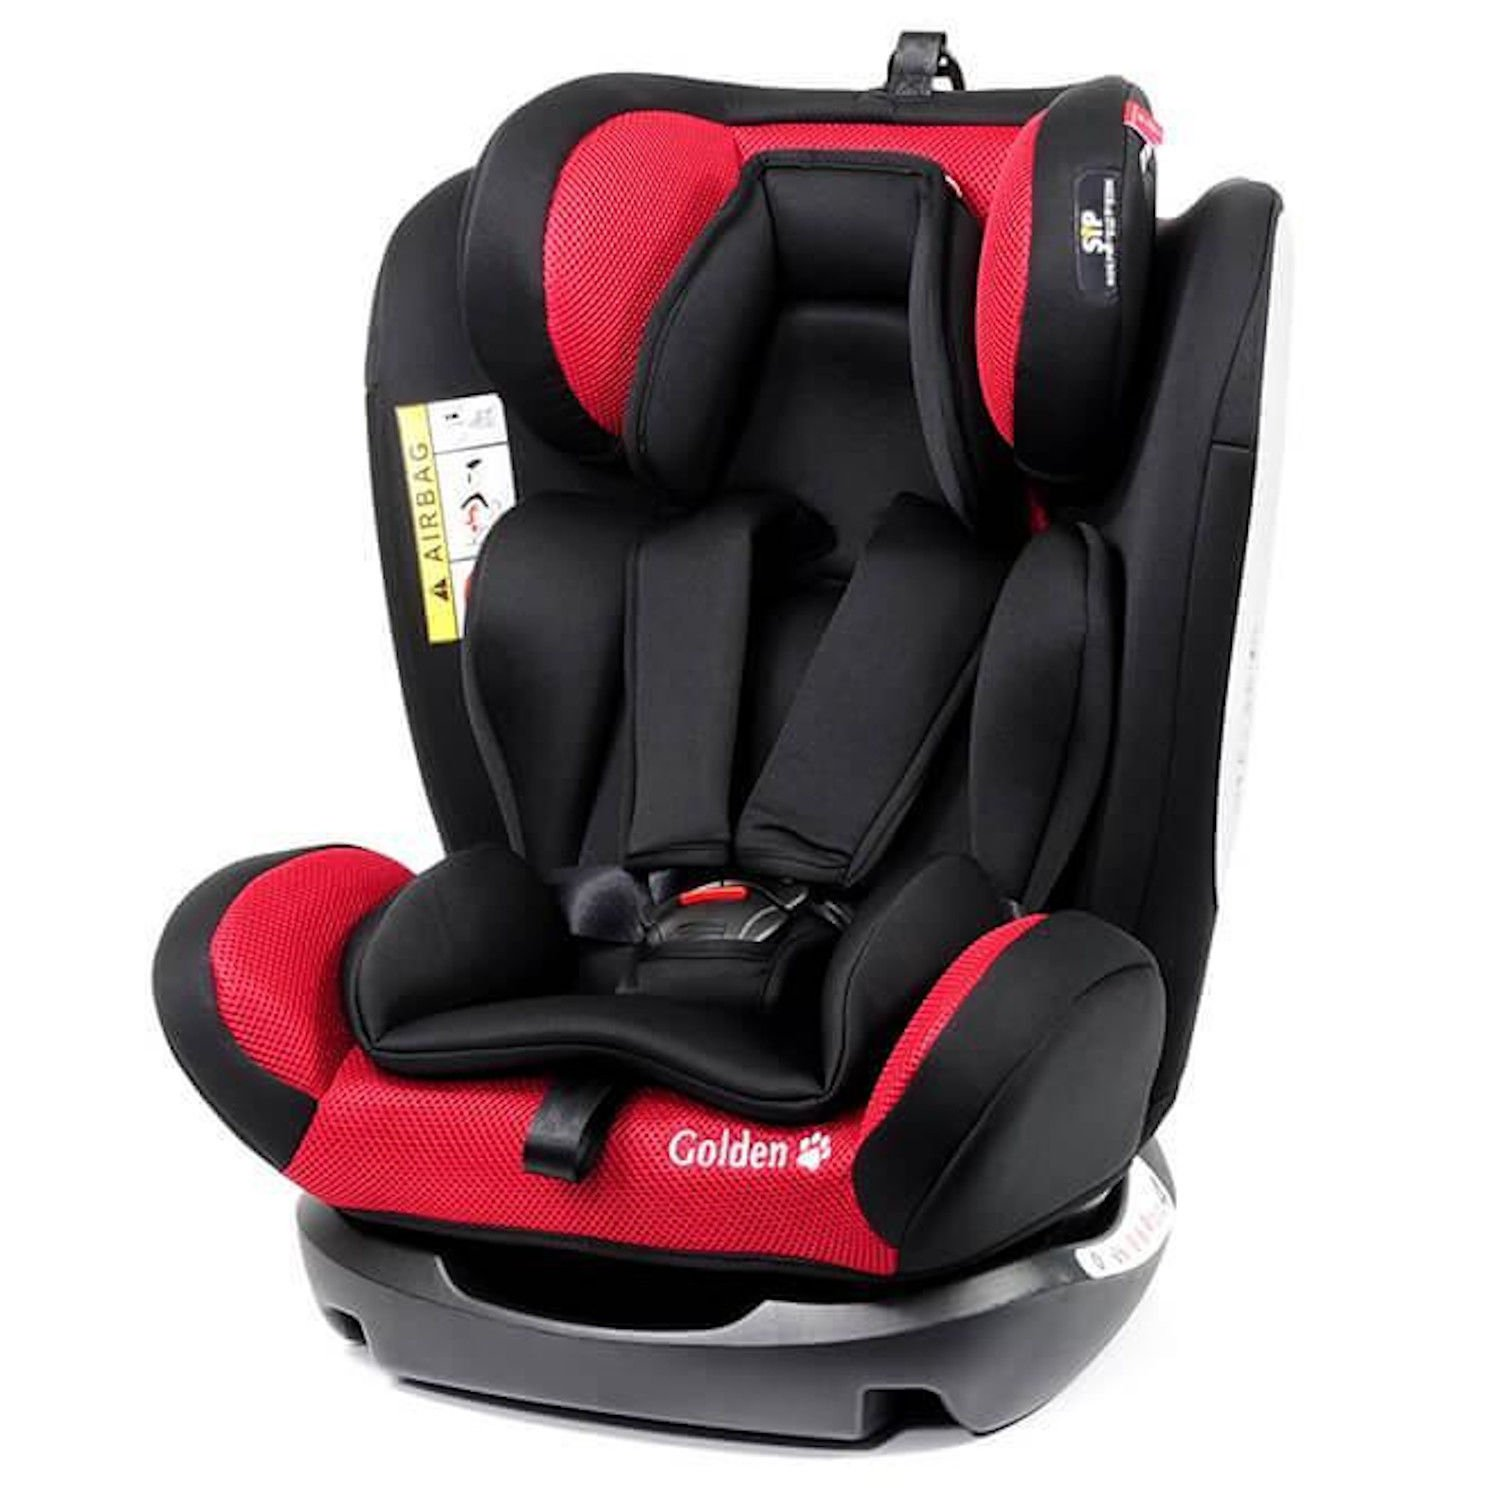 Babysafe Golden red Child Seat (0-36 kg